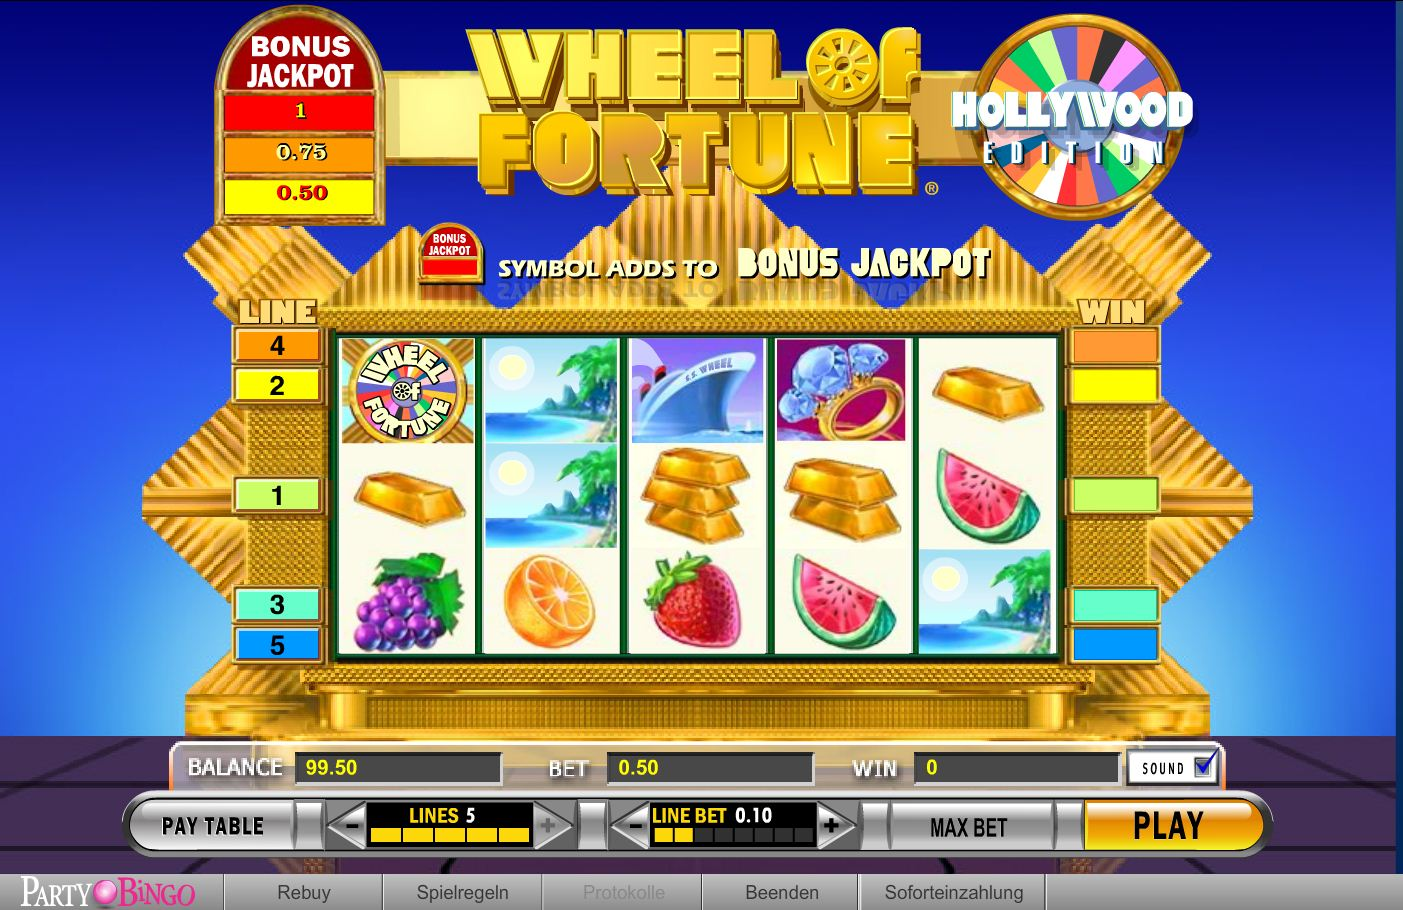 play wheel of fortune online free game show on skunk studios